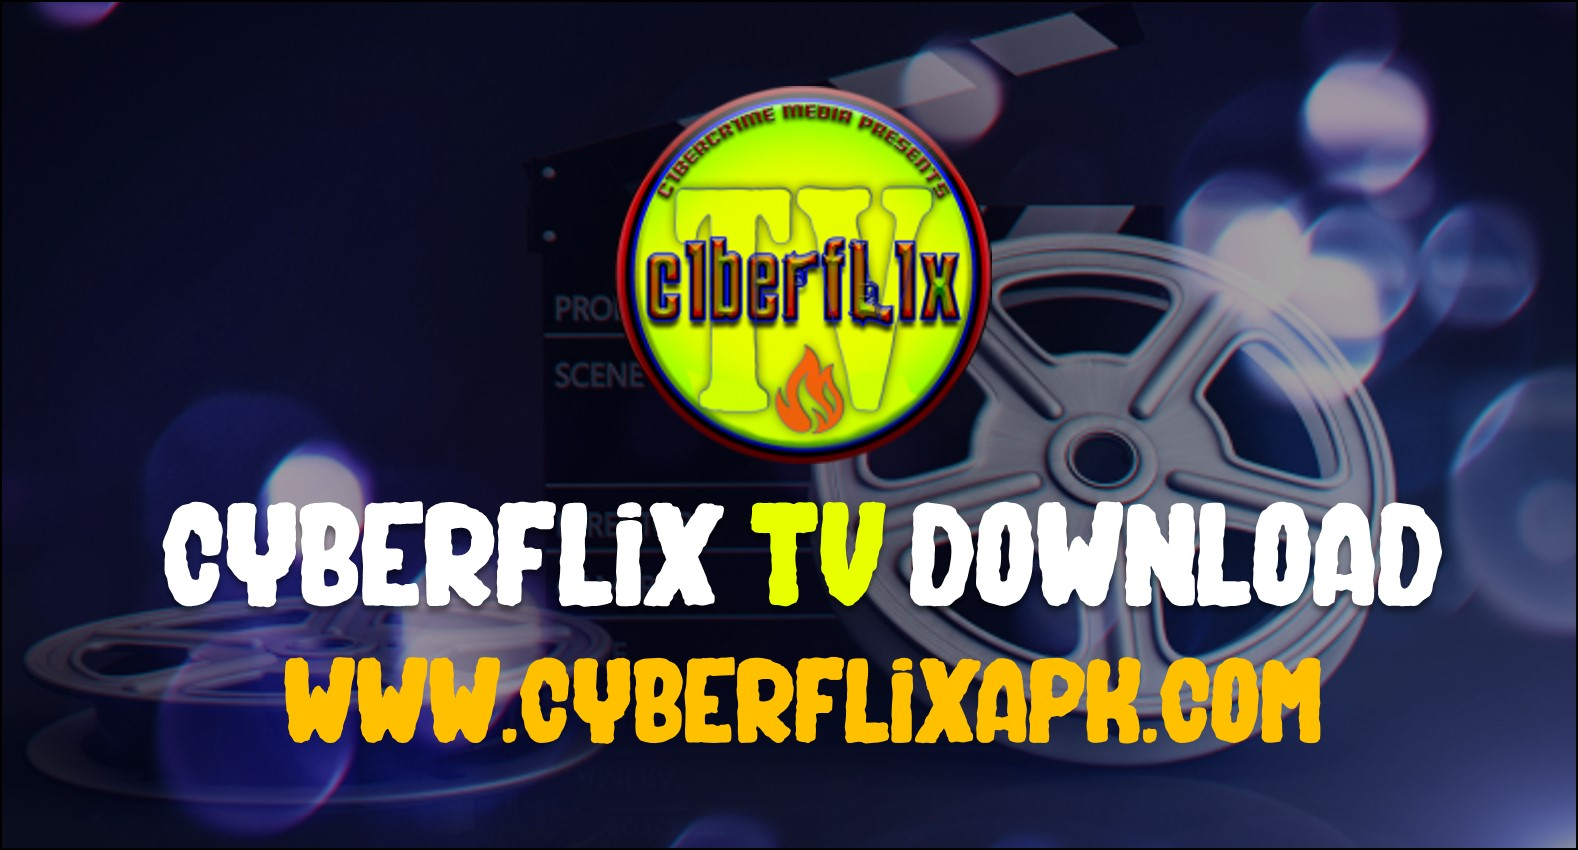 Cyberflix TV APK Download For Android, iOS, Fire TV